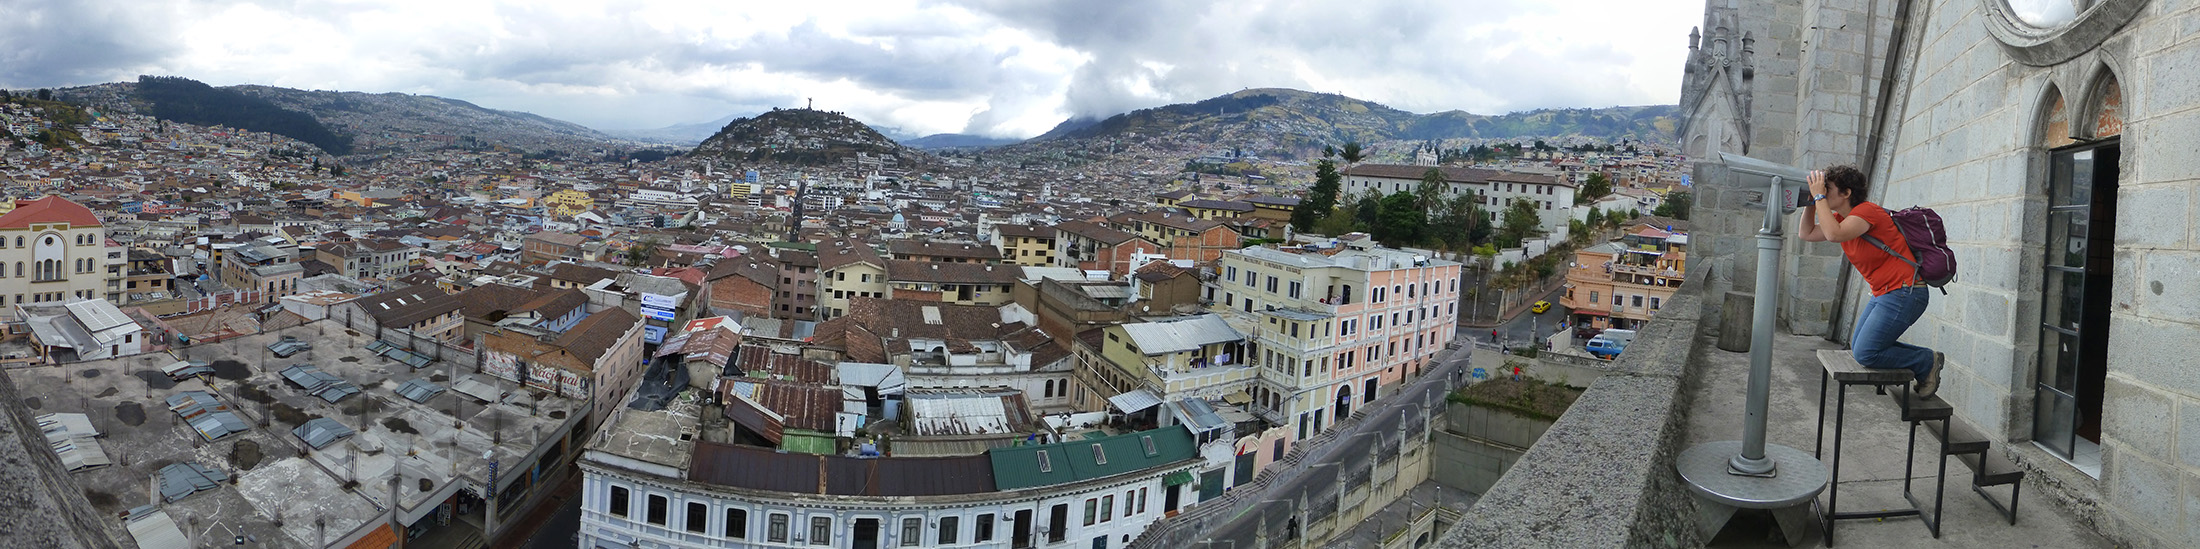 Overlooking Quito From The Basílica